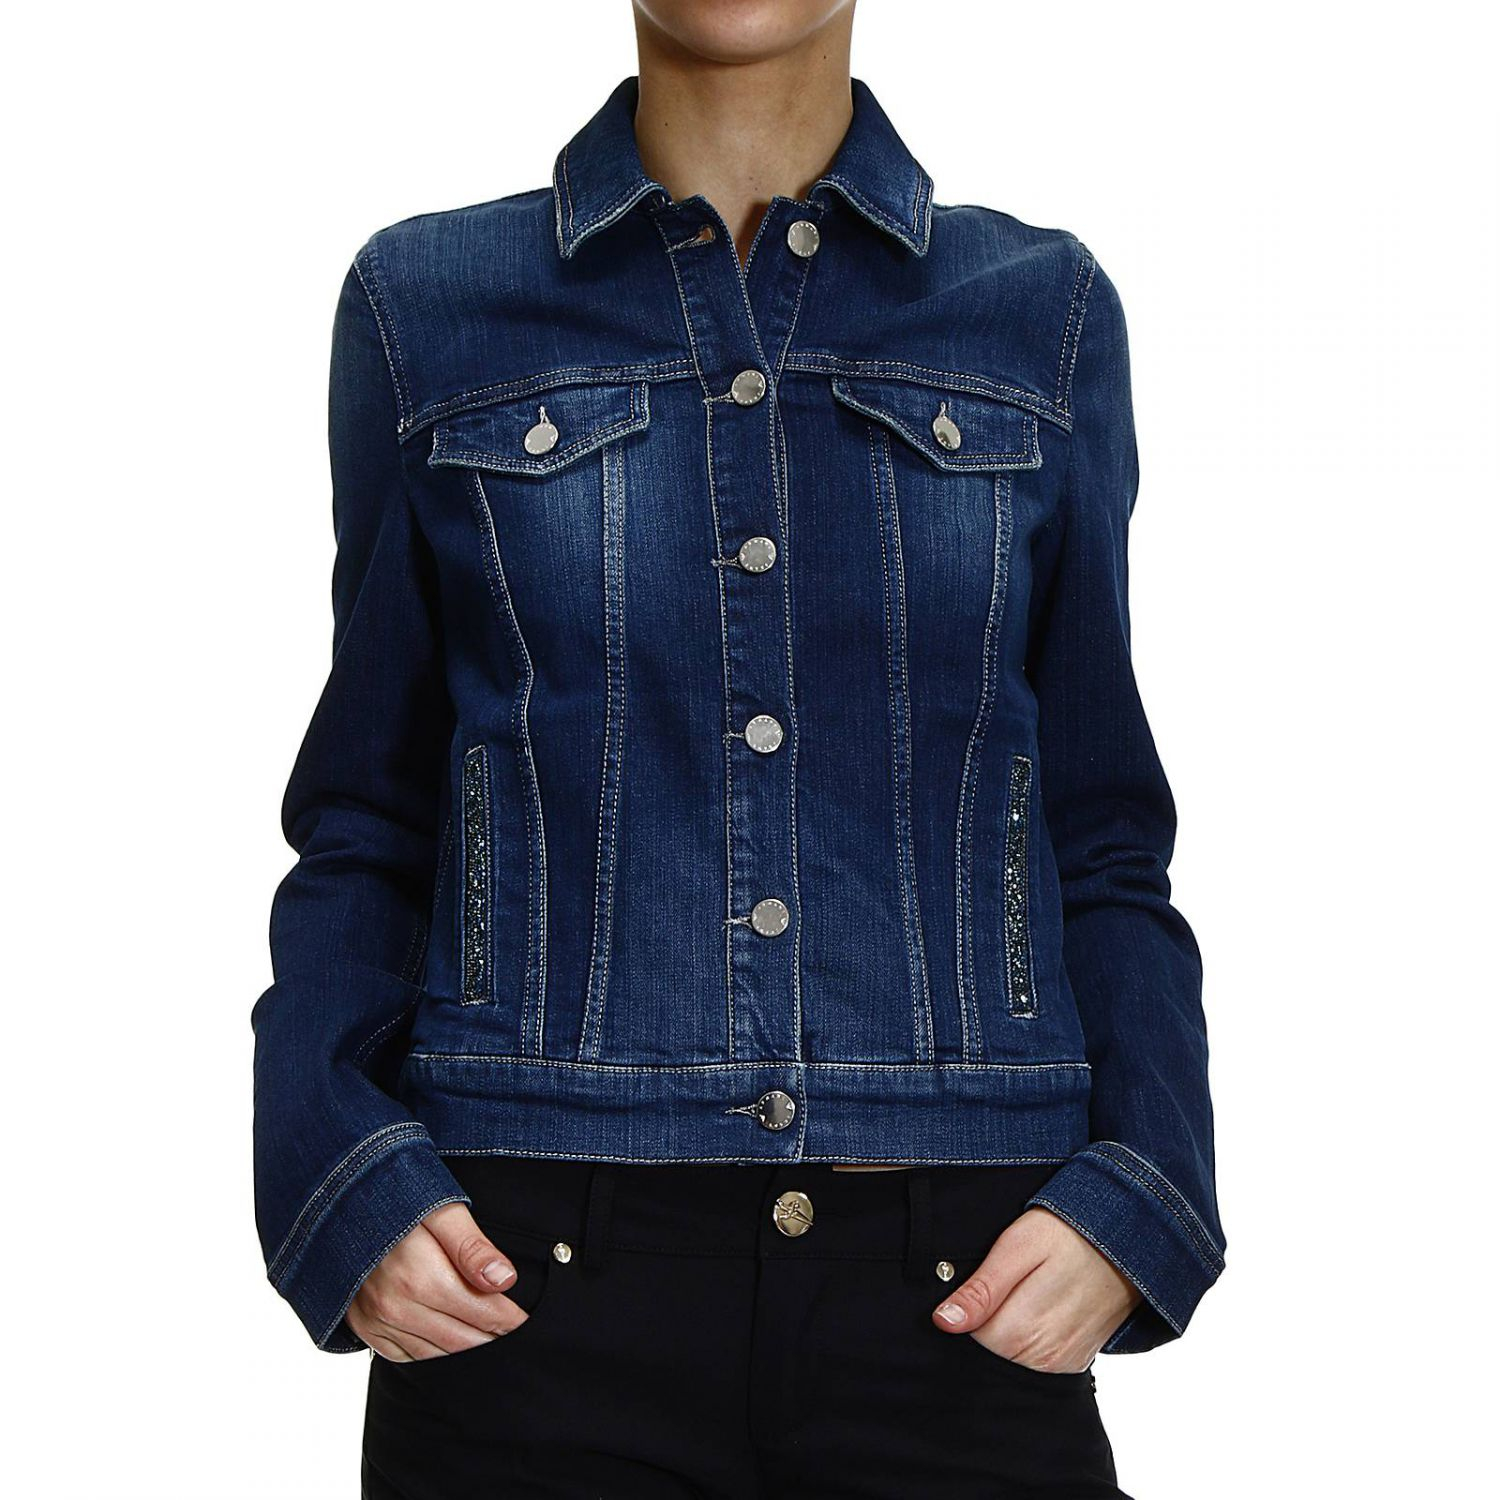 1d396d482c Strass Denim Jacket Armani Blue With Lyst Jeans In xRIwHqA